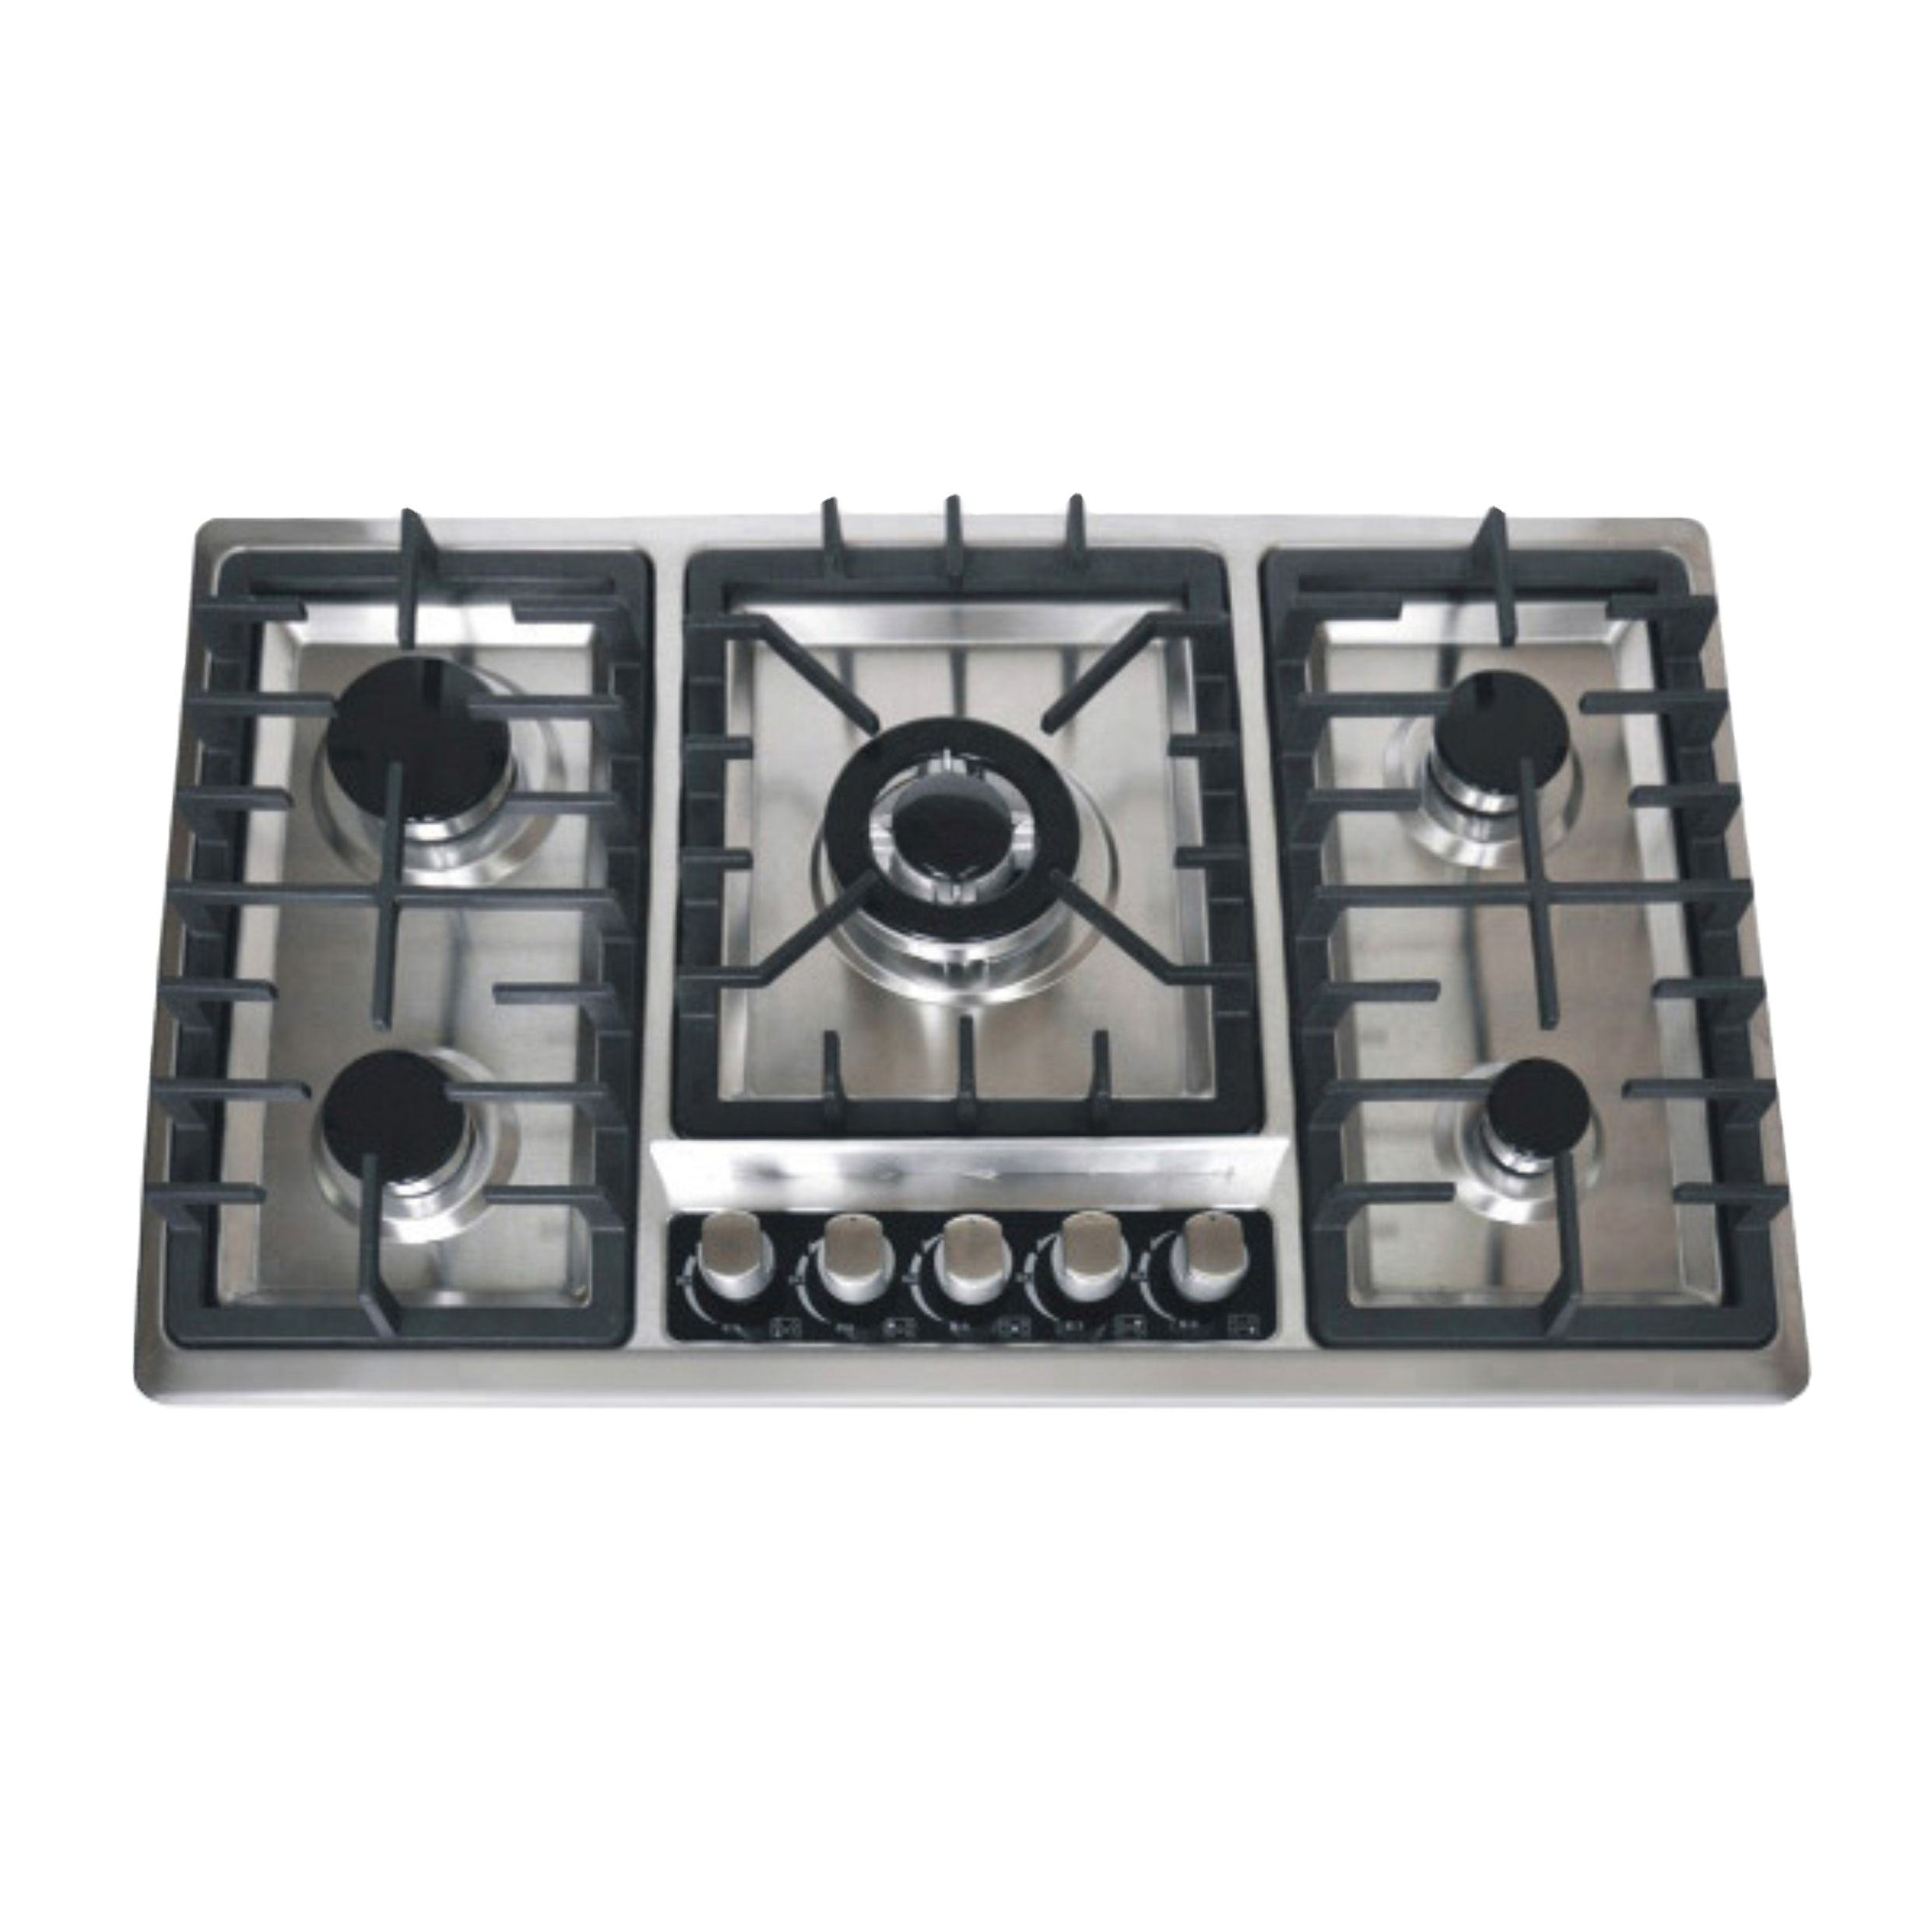 stainless steel built in 5 burner gas stove with cast iron pan support